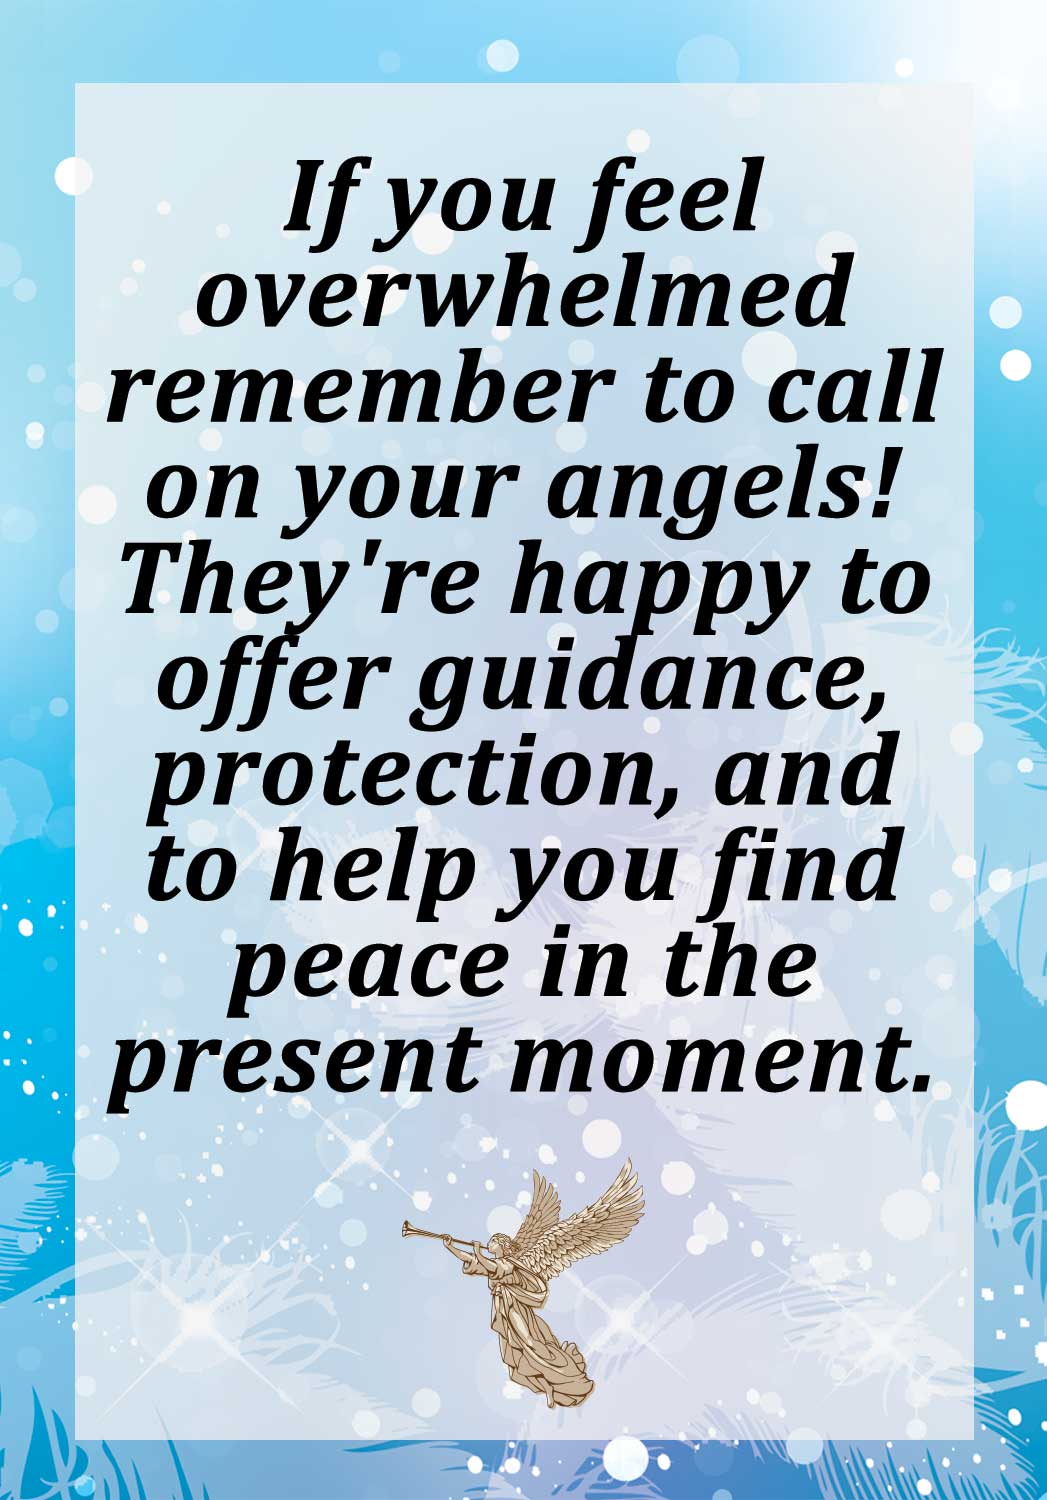 Daily Angel Oracle Card Celebration From The Guardian: Daily Inspiration Angel Oracle Cards